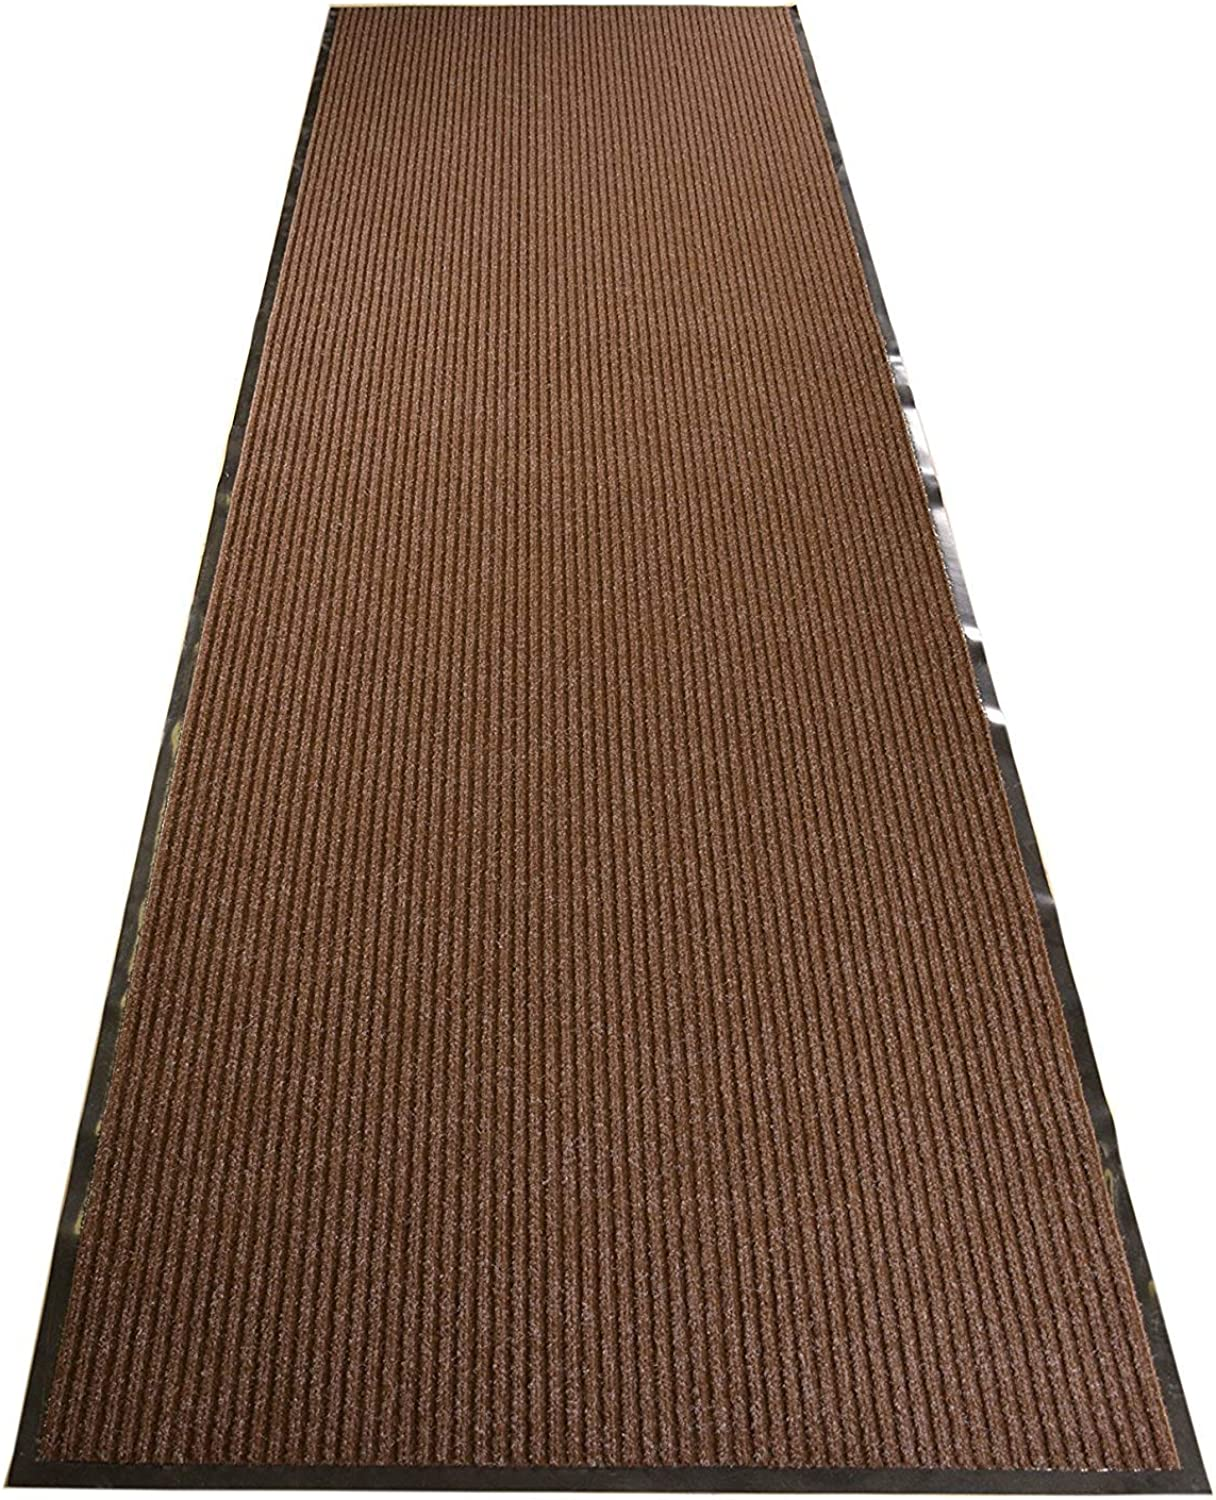 RugStylesOnline Tough Entry Mat Indoor Outdoor Entrance Mat and Hallway Runner Tough Entry Collection Slip Skid Resistant PVC Backing Anti Bacterial Commercial Grade (Brown, 3' x 10')